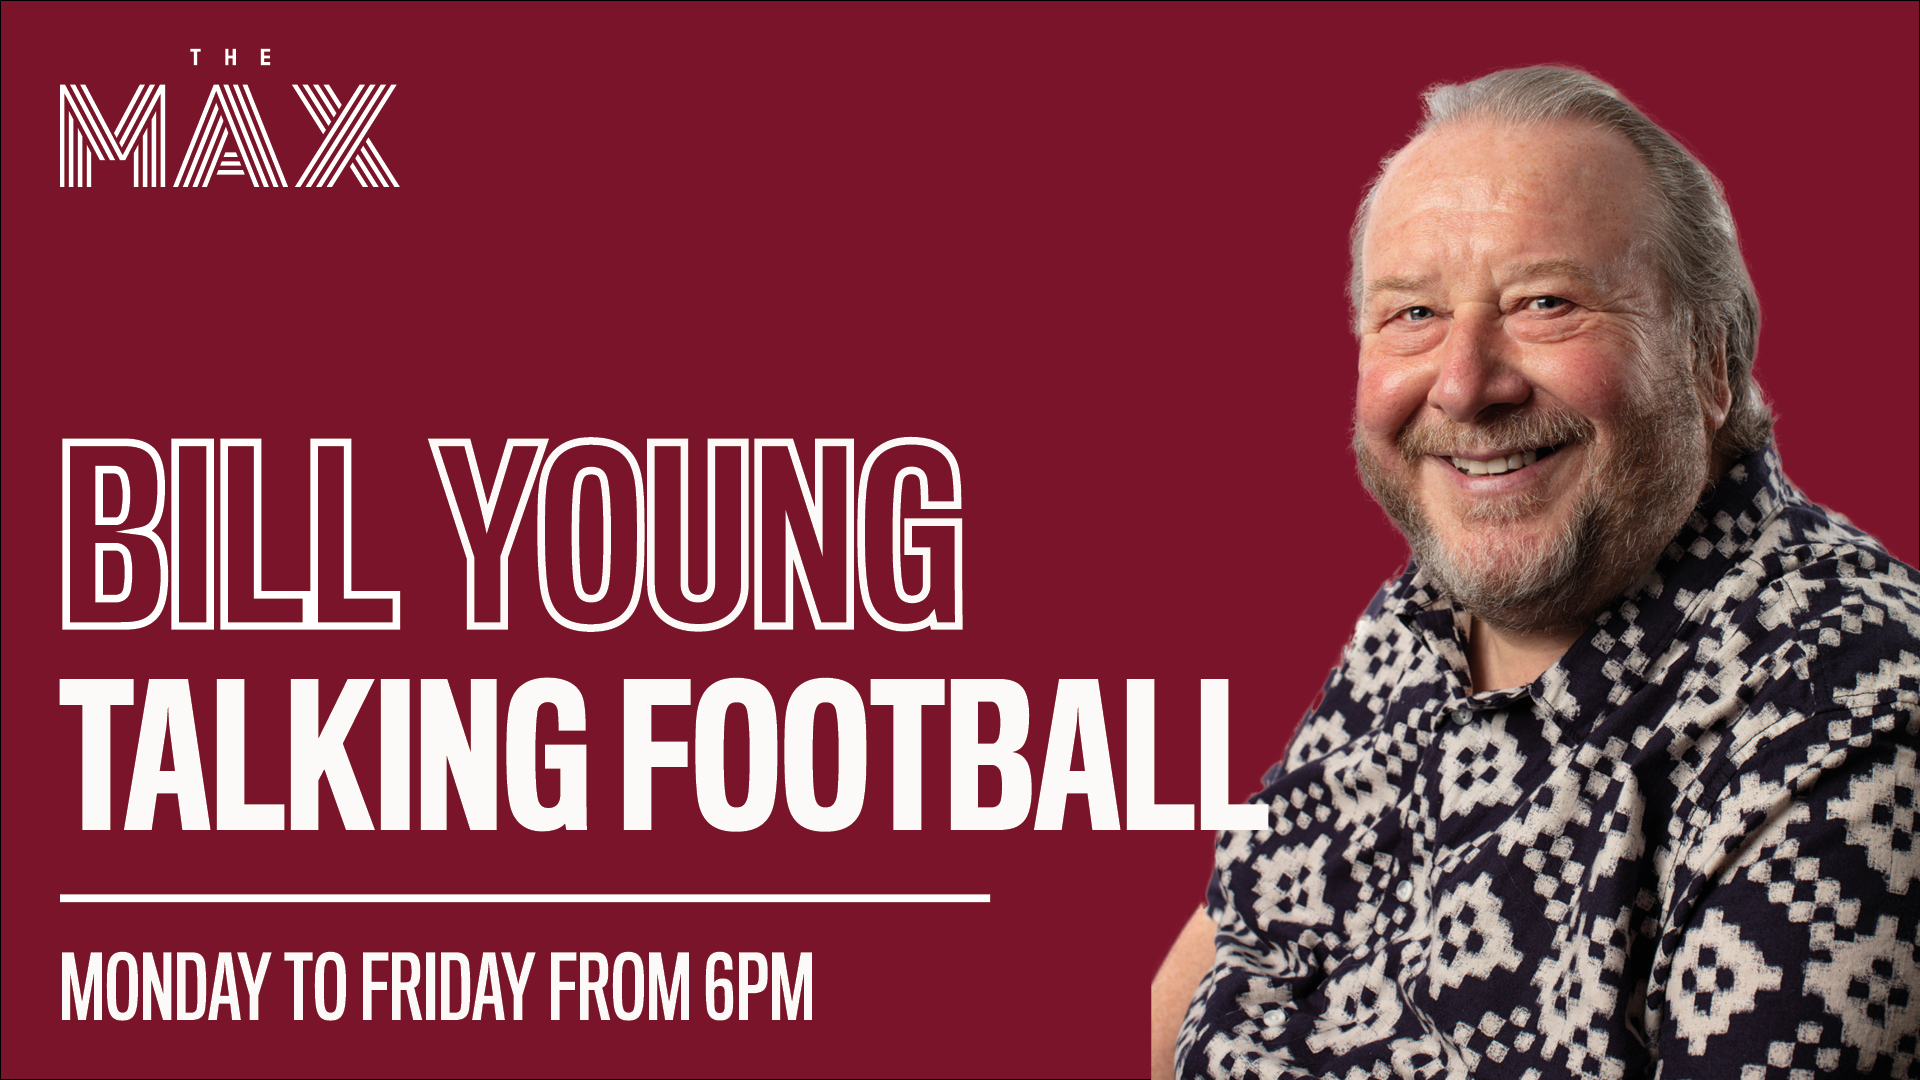 Talking Football with Bill Young - Monday 24th of August - Episode 16